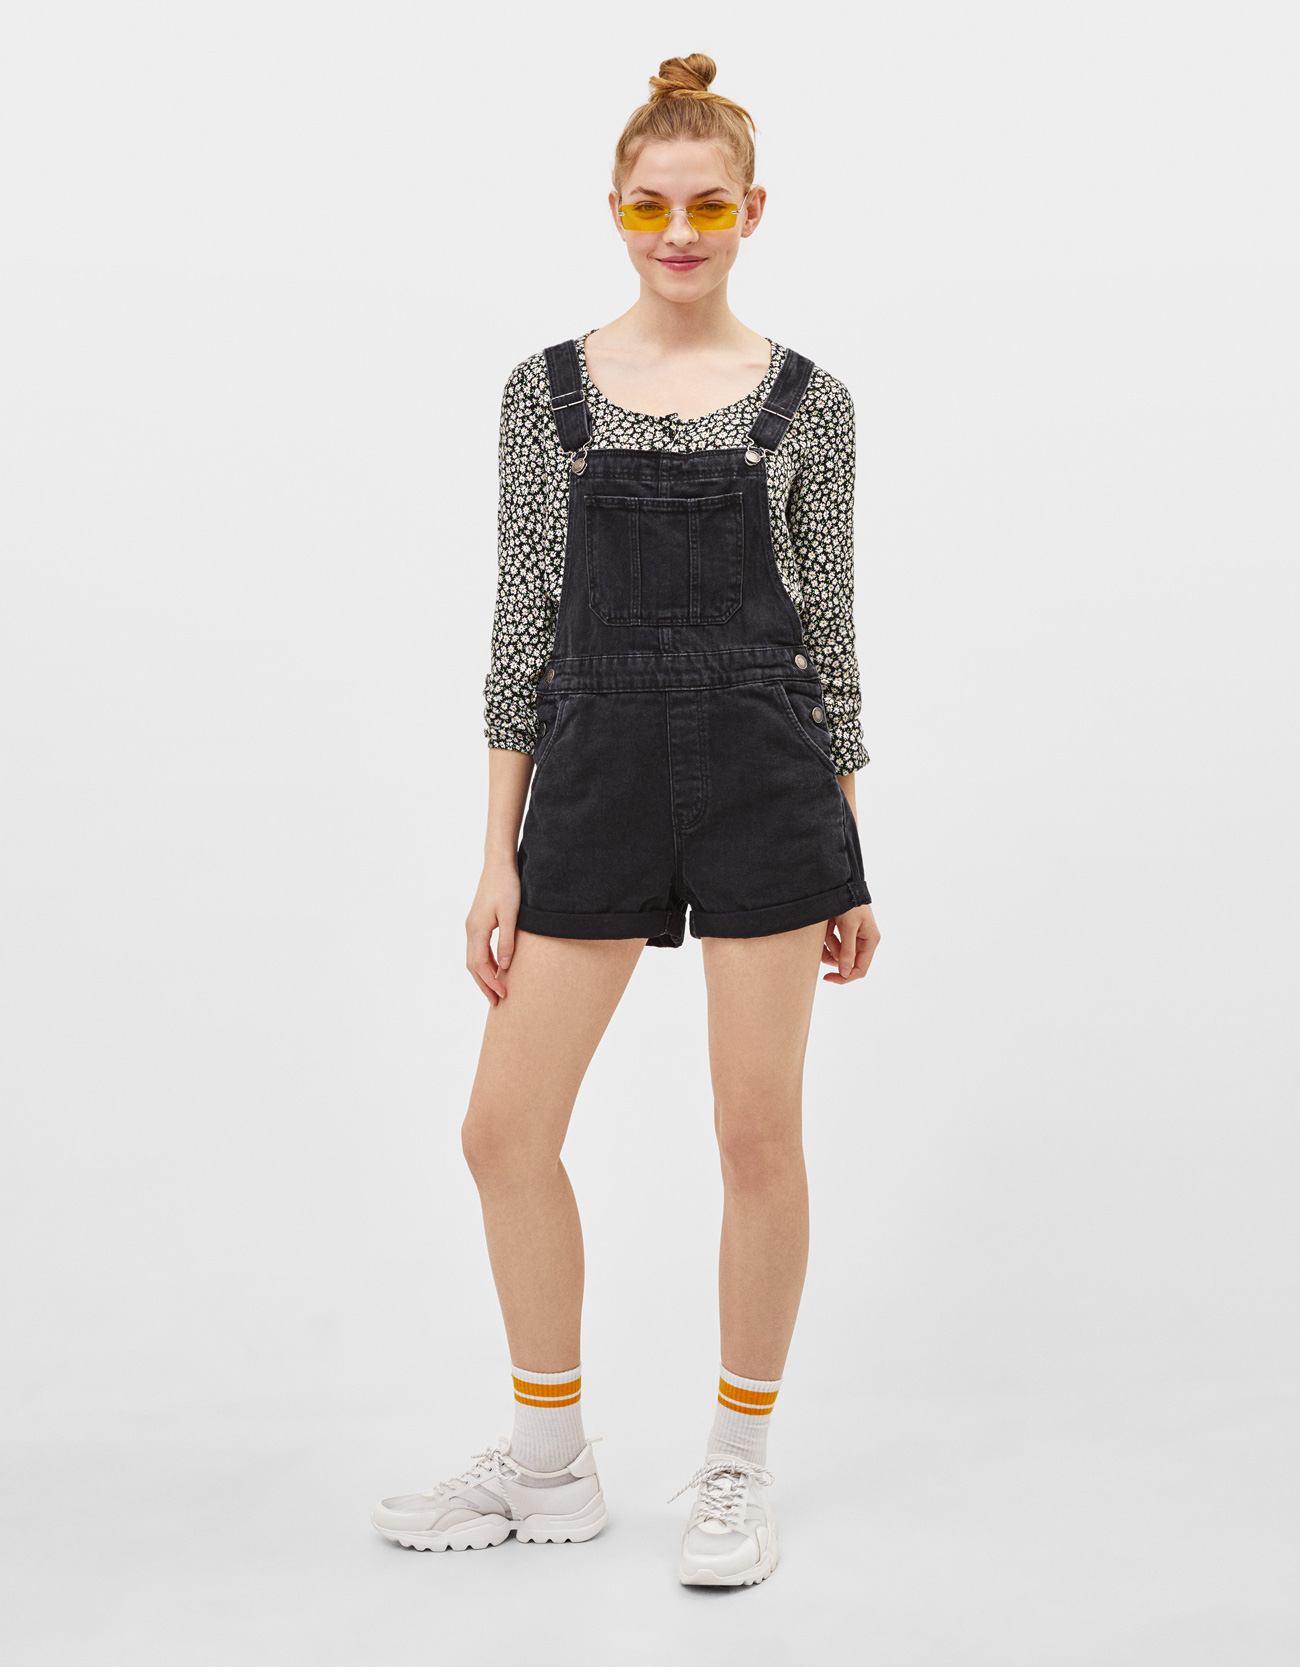 ee9c3844ba3 Short denim dungarees - CLOTHING - Bershka Serbia